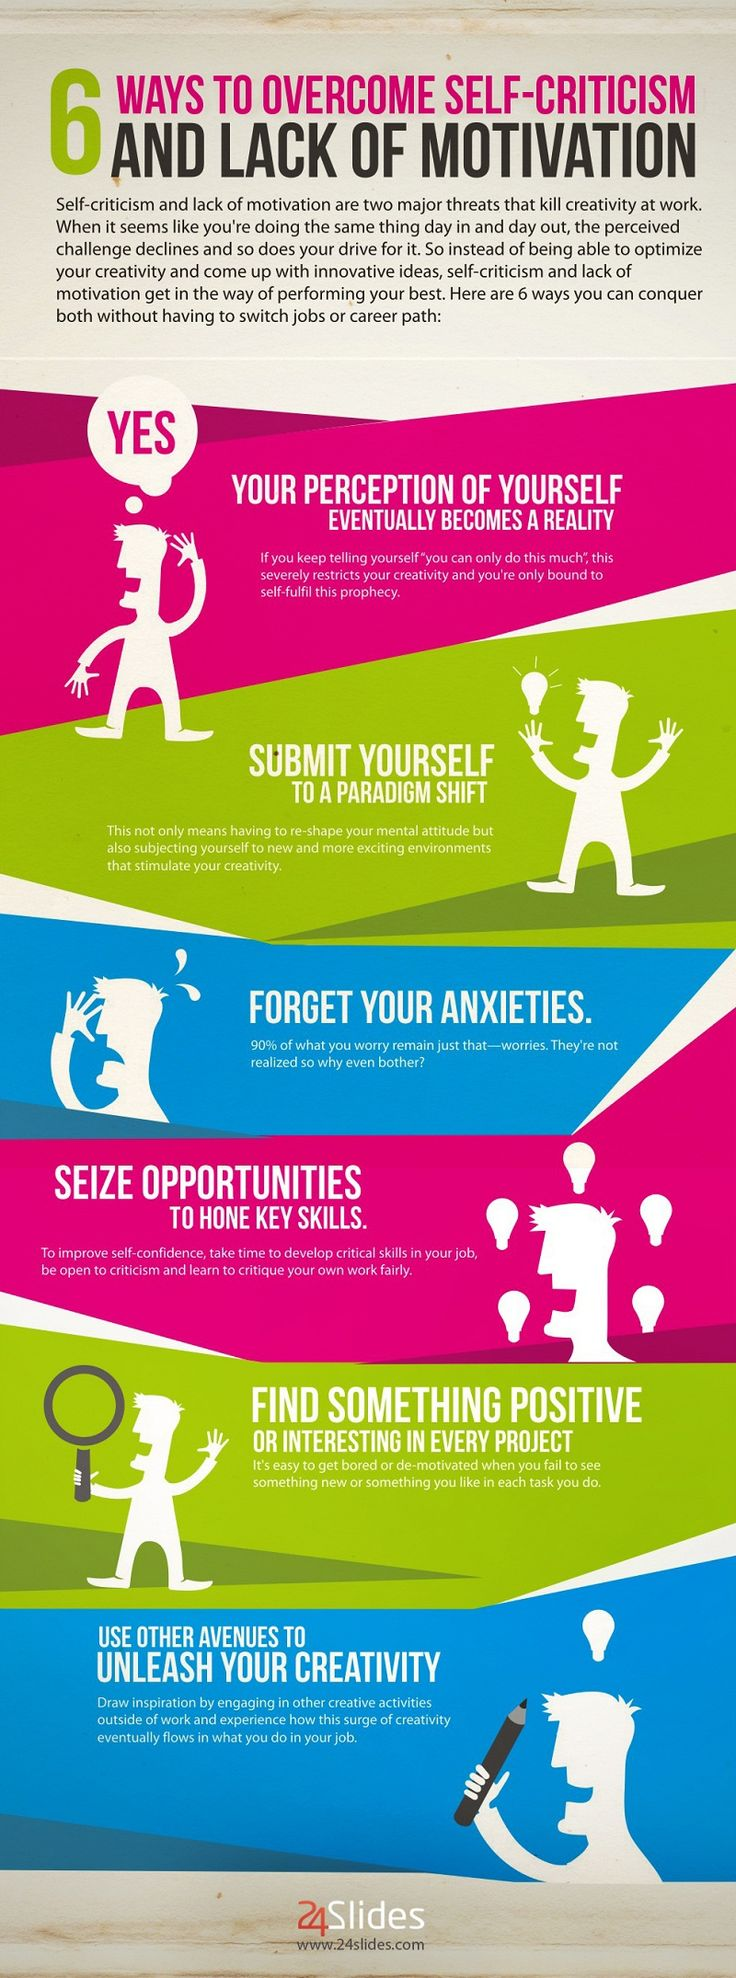 6 Excellent Tips for Overcoming Self-Criticism